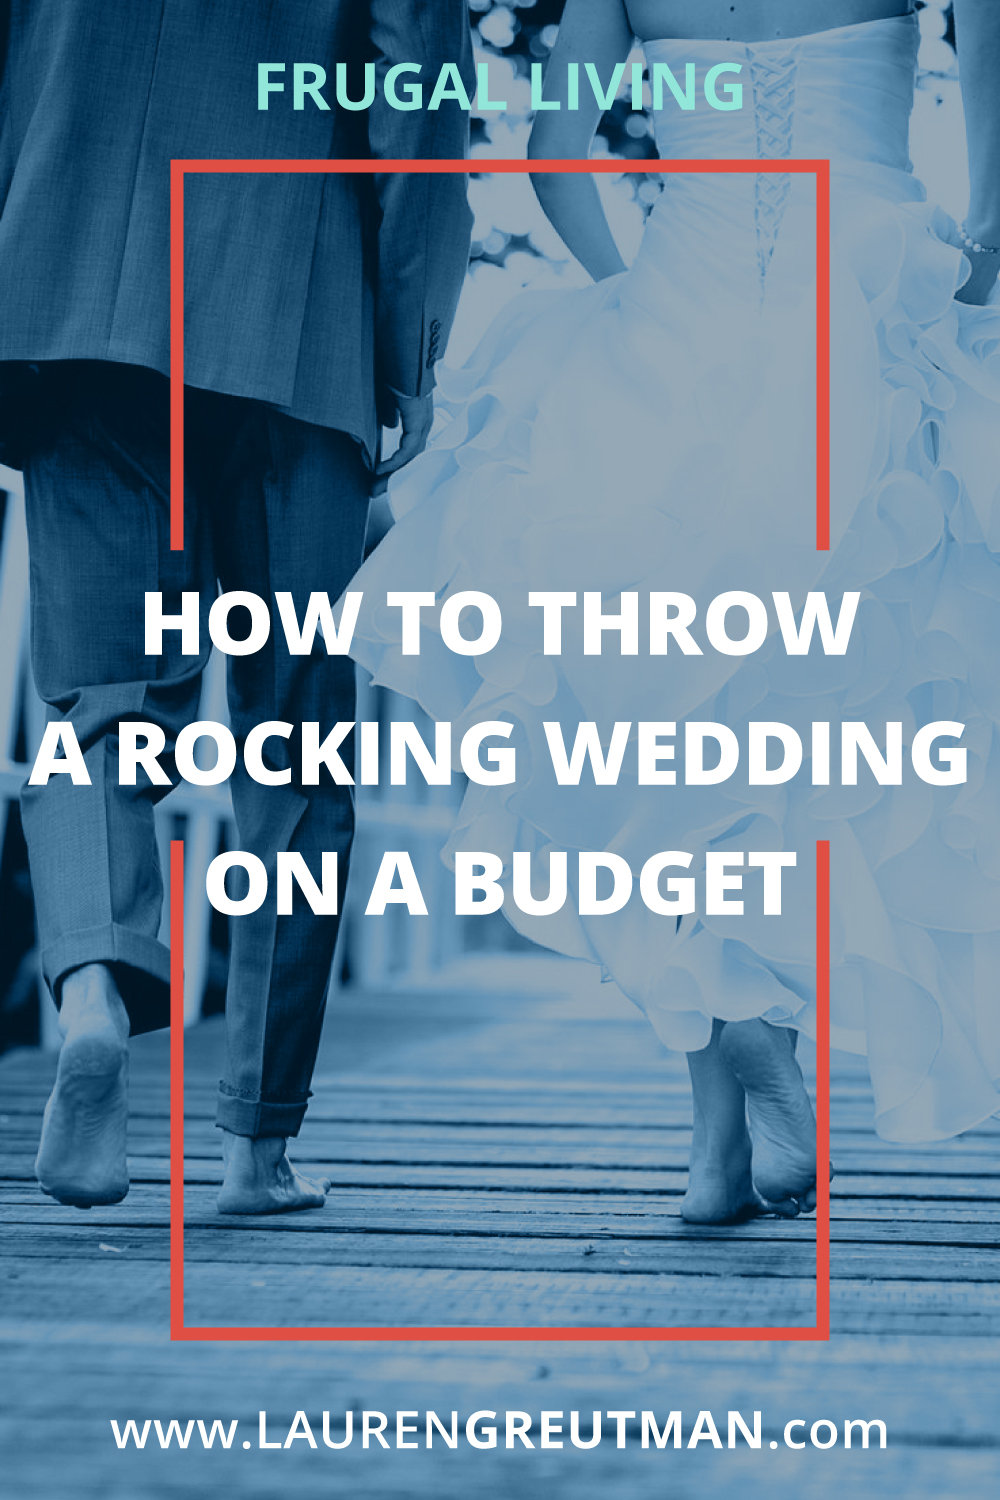 The average cost of a wedding is $30,000! But you can throw an awesome wedding on a budget that will be just as memorable for a fraction of the cost!